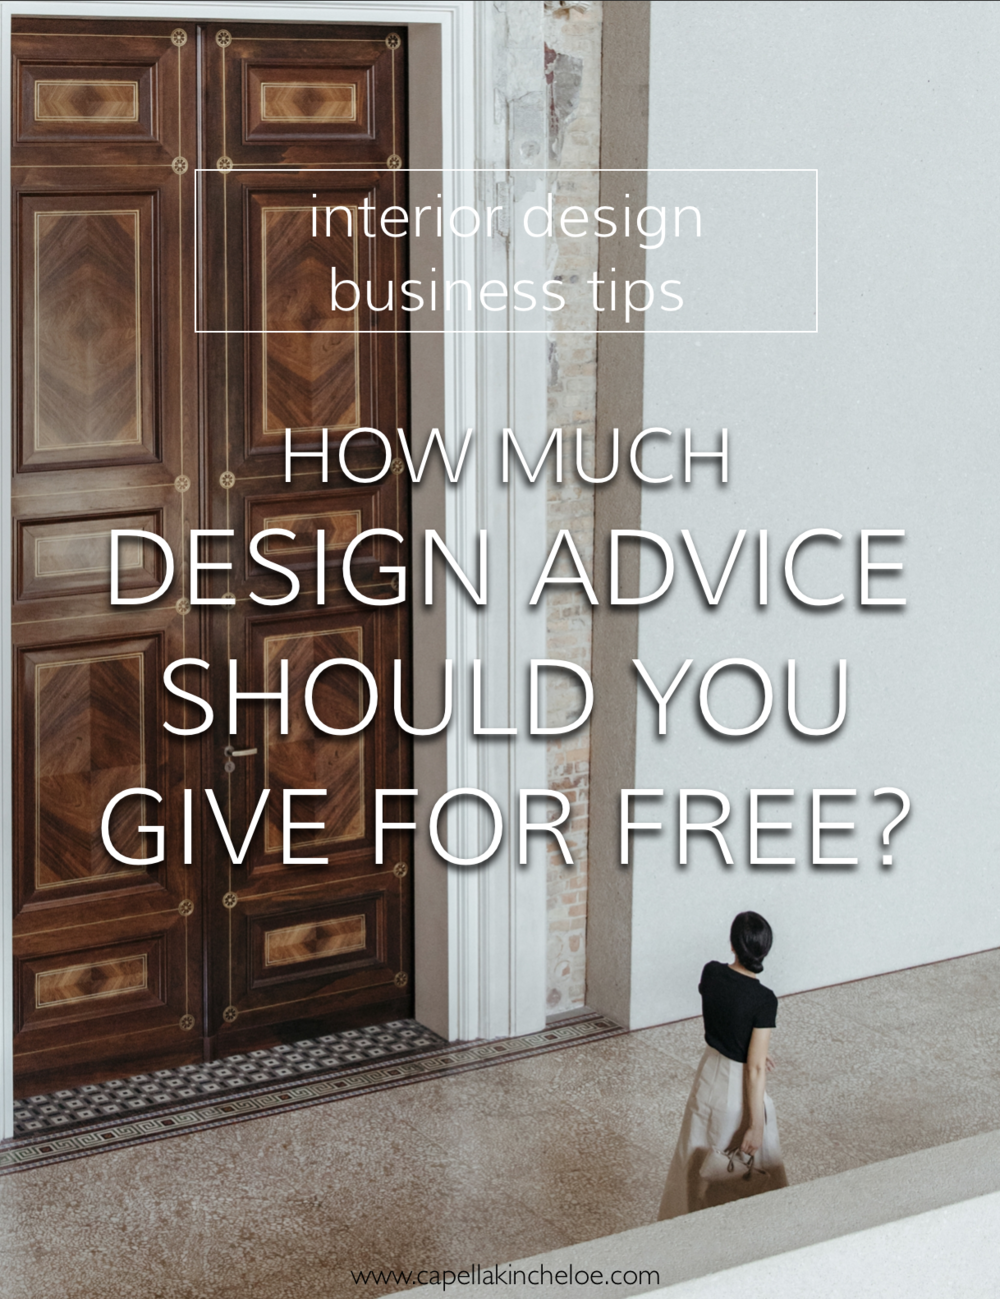 How much free interior design advice should you give to new clients before you're giving too much away? #interiordesignconsultation #interiordesignbusiness #interiordesignceo #capellakincheloe #cktradesecrets